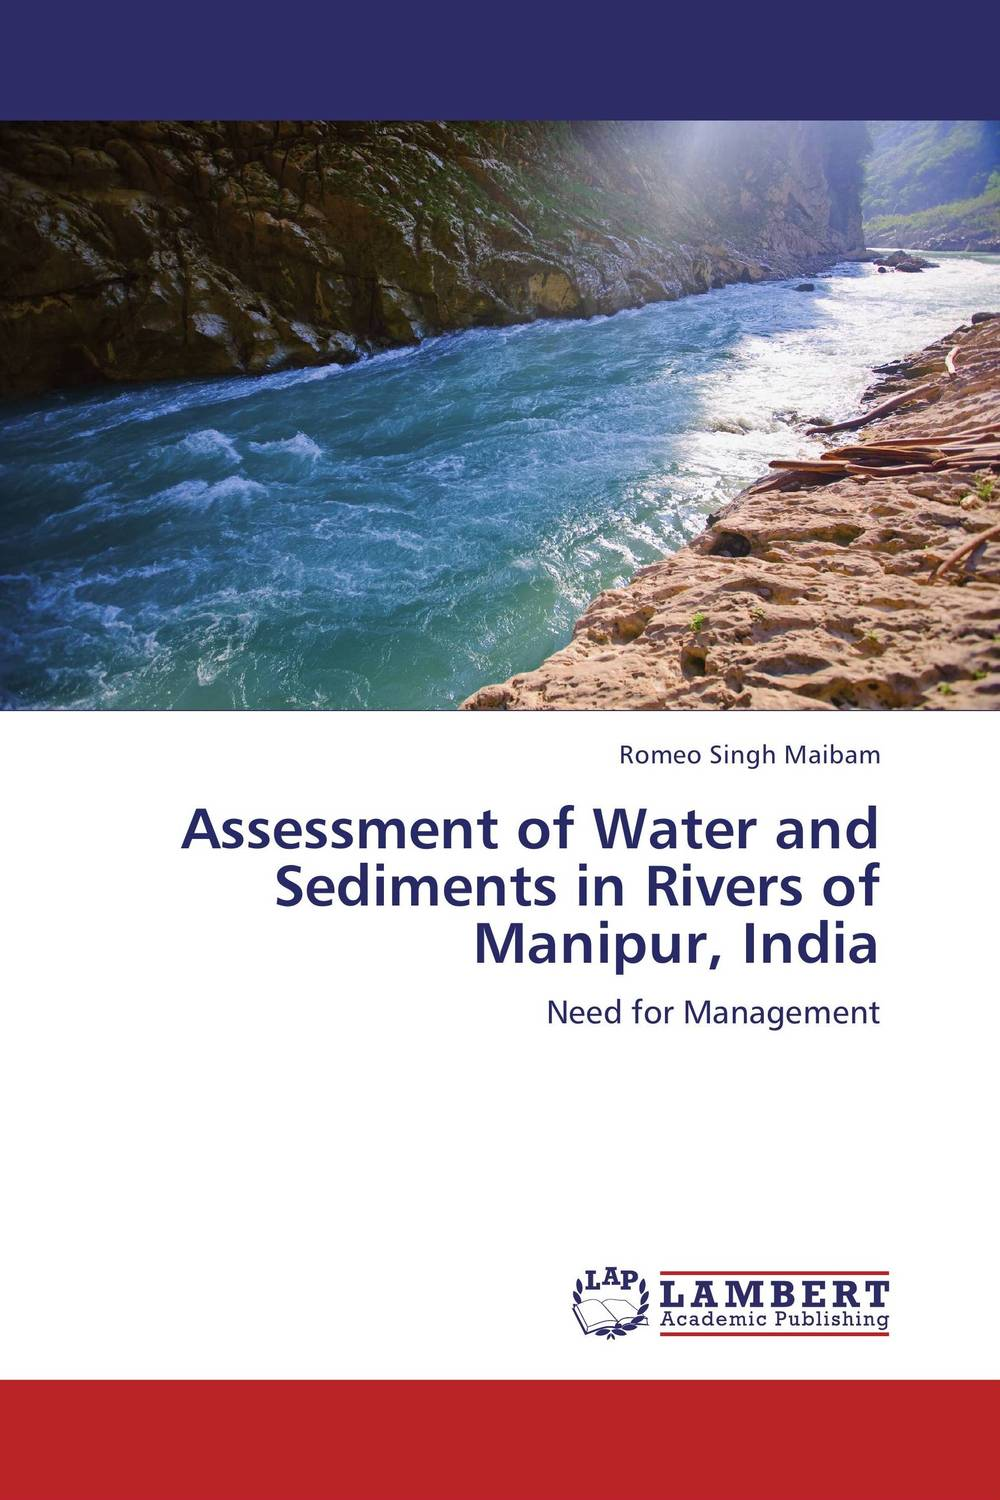 Assessment of Water and Sediments in Rivers of Manipur, India assessment of patient and staff safety standards in india